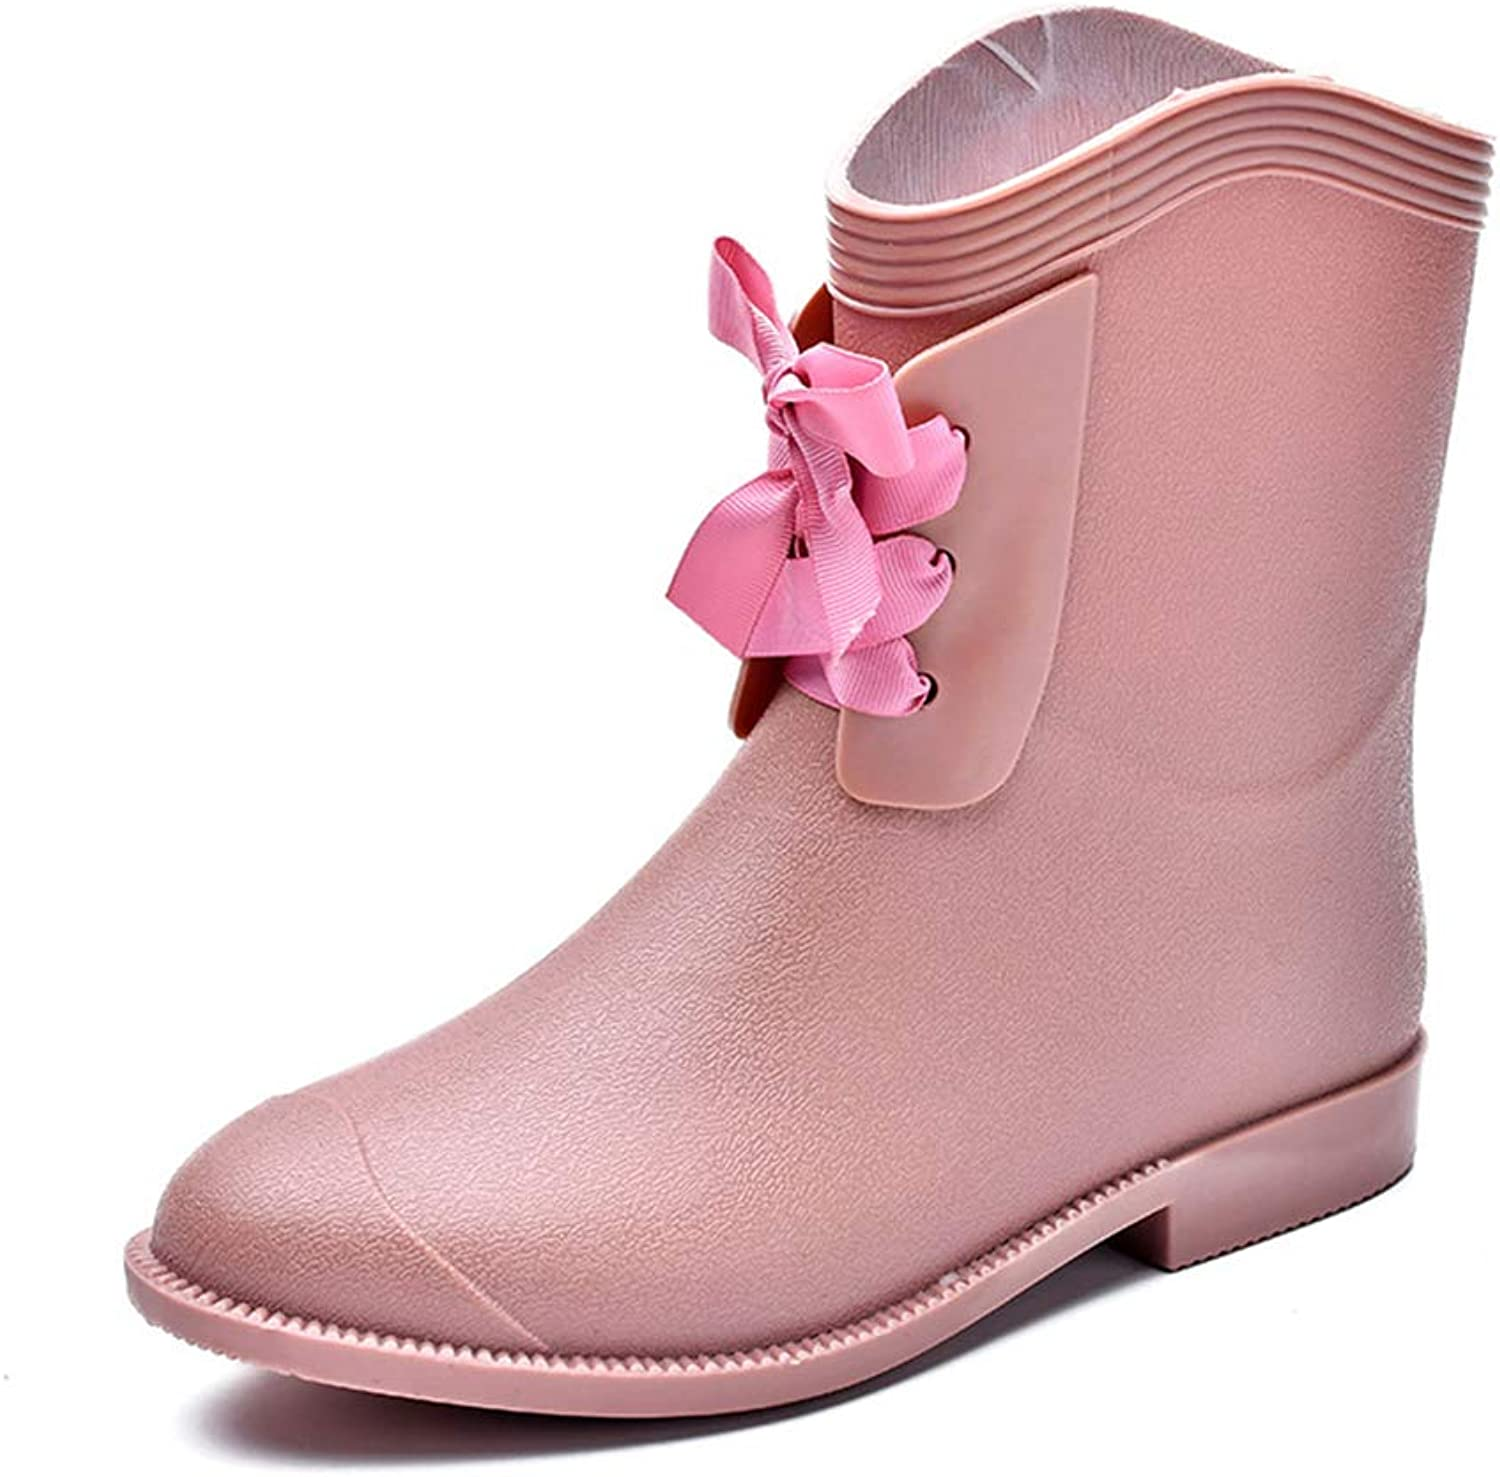 Quality.A New Women's Water shoes Rubber Boots rain Boots Waterproof Boots